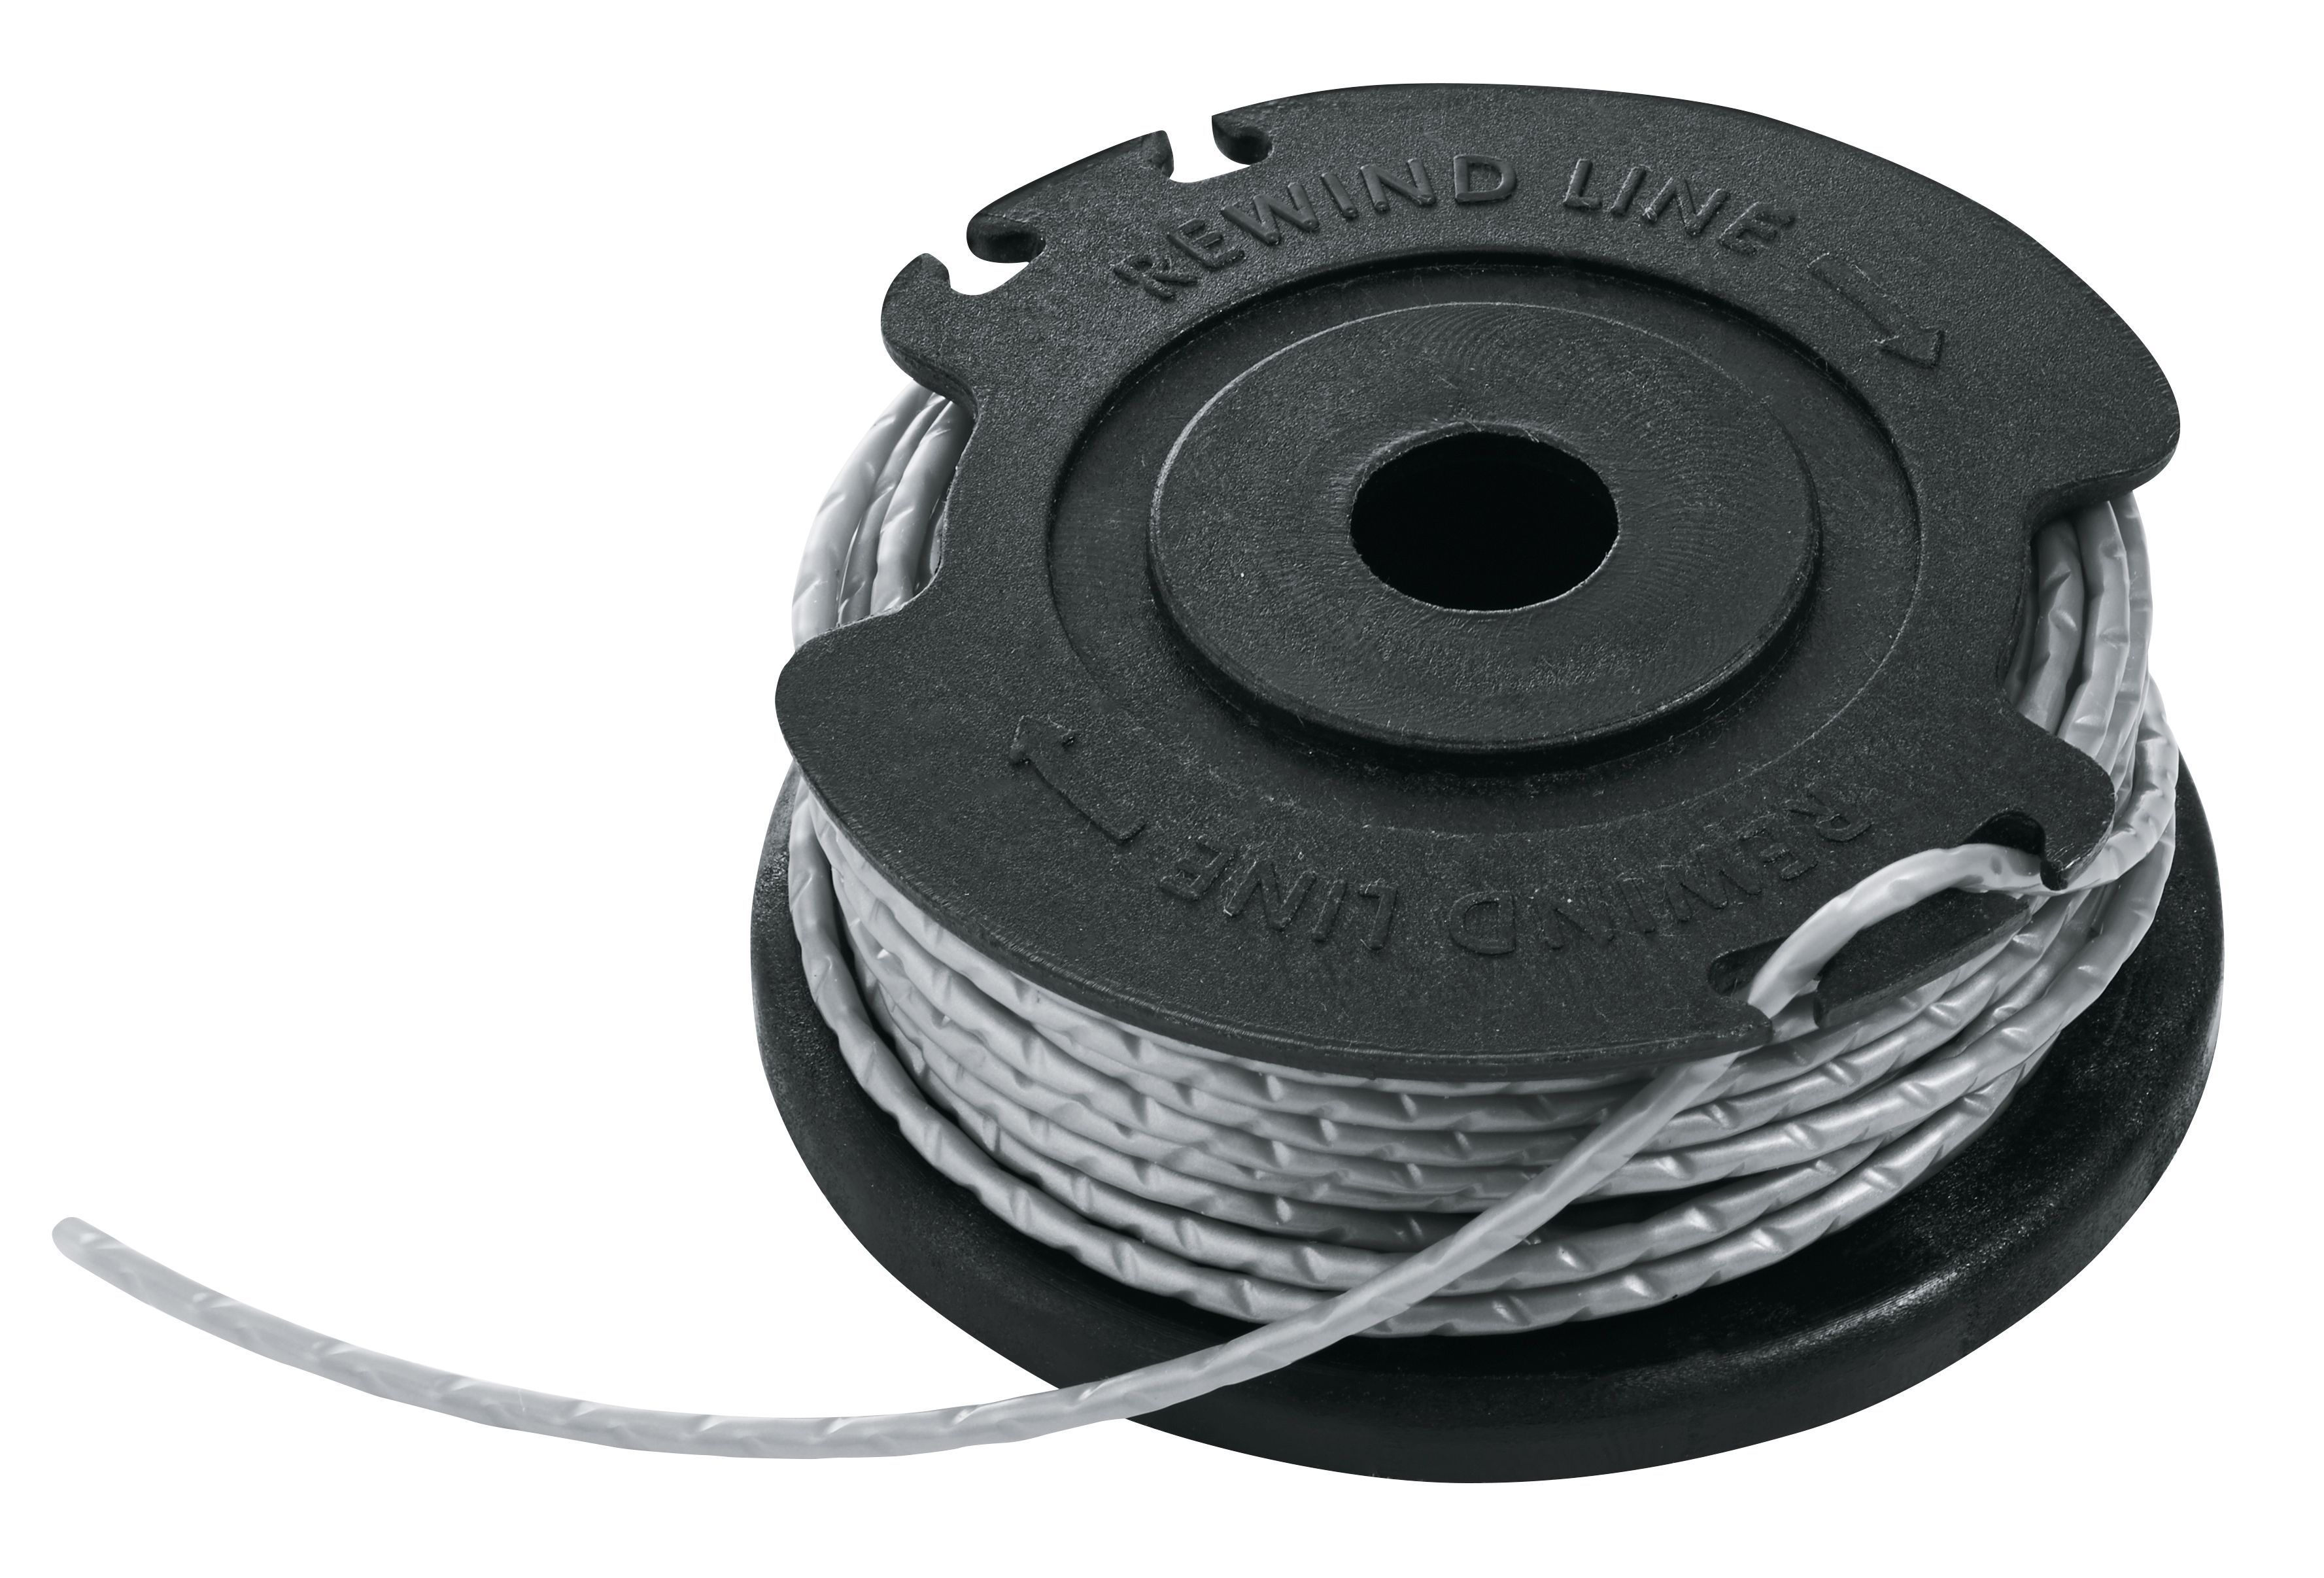 Bosch Strong Spool Spool Amp Line To Fit Bosch Models Art26 Sl T 1 6mm Departments Diy At B Amp Q